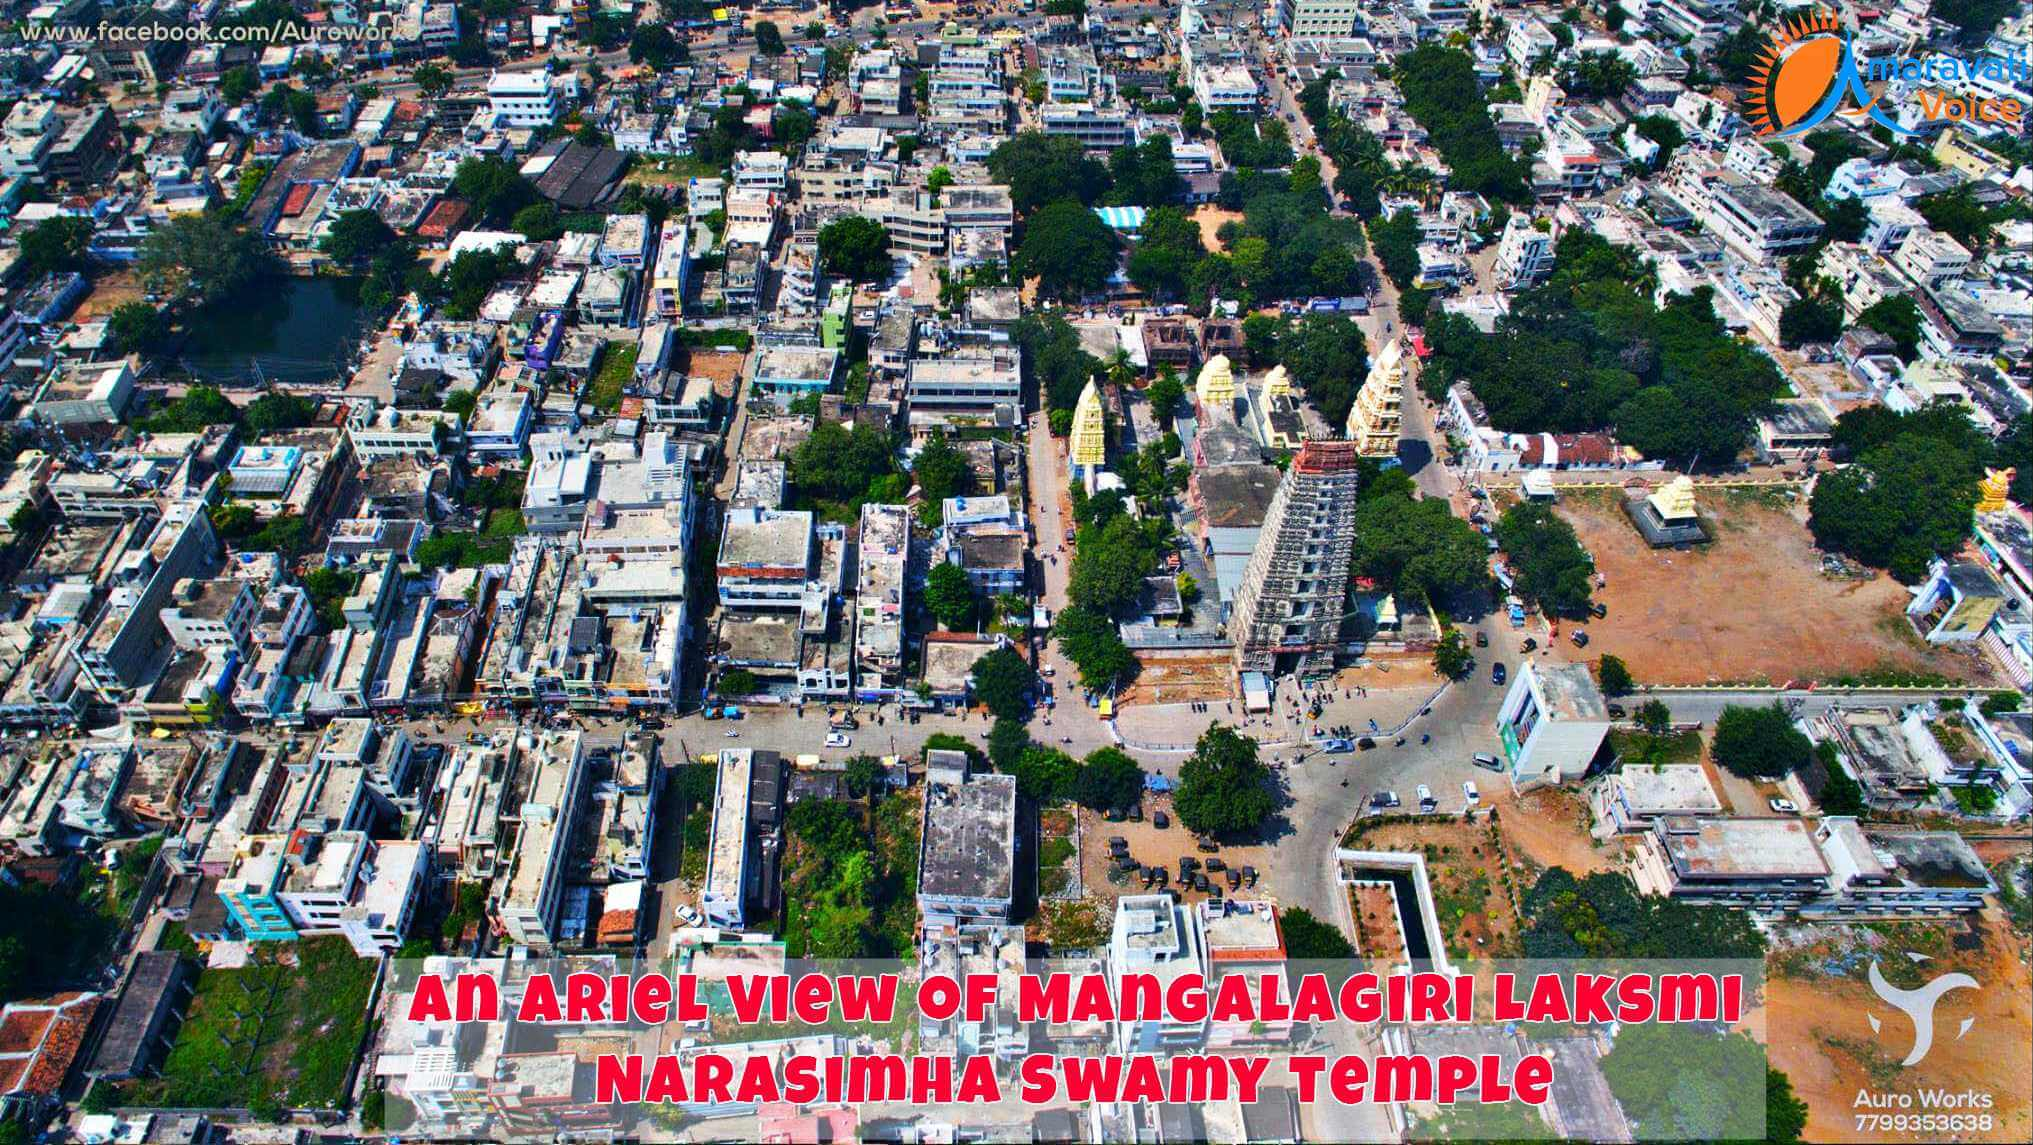 An Ariel View of Lakshmi Narashimha Swamy Temple in Mangalagiri